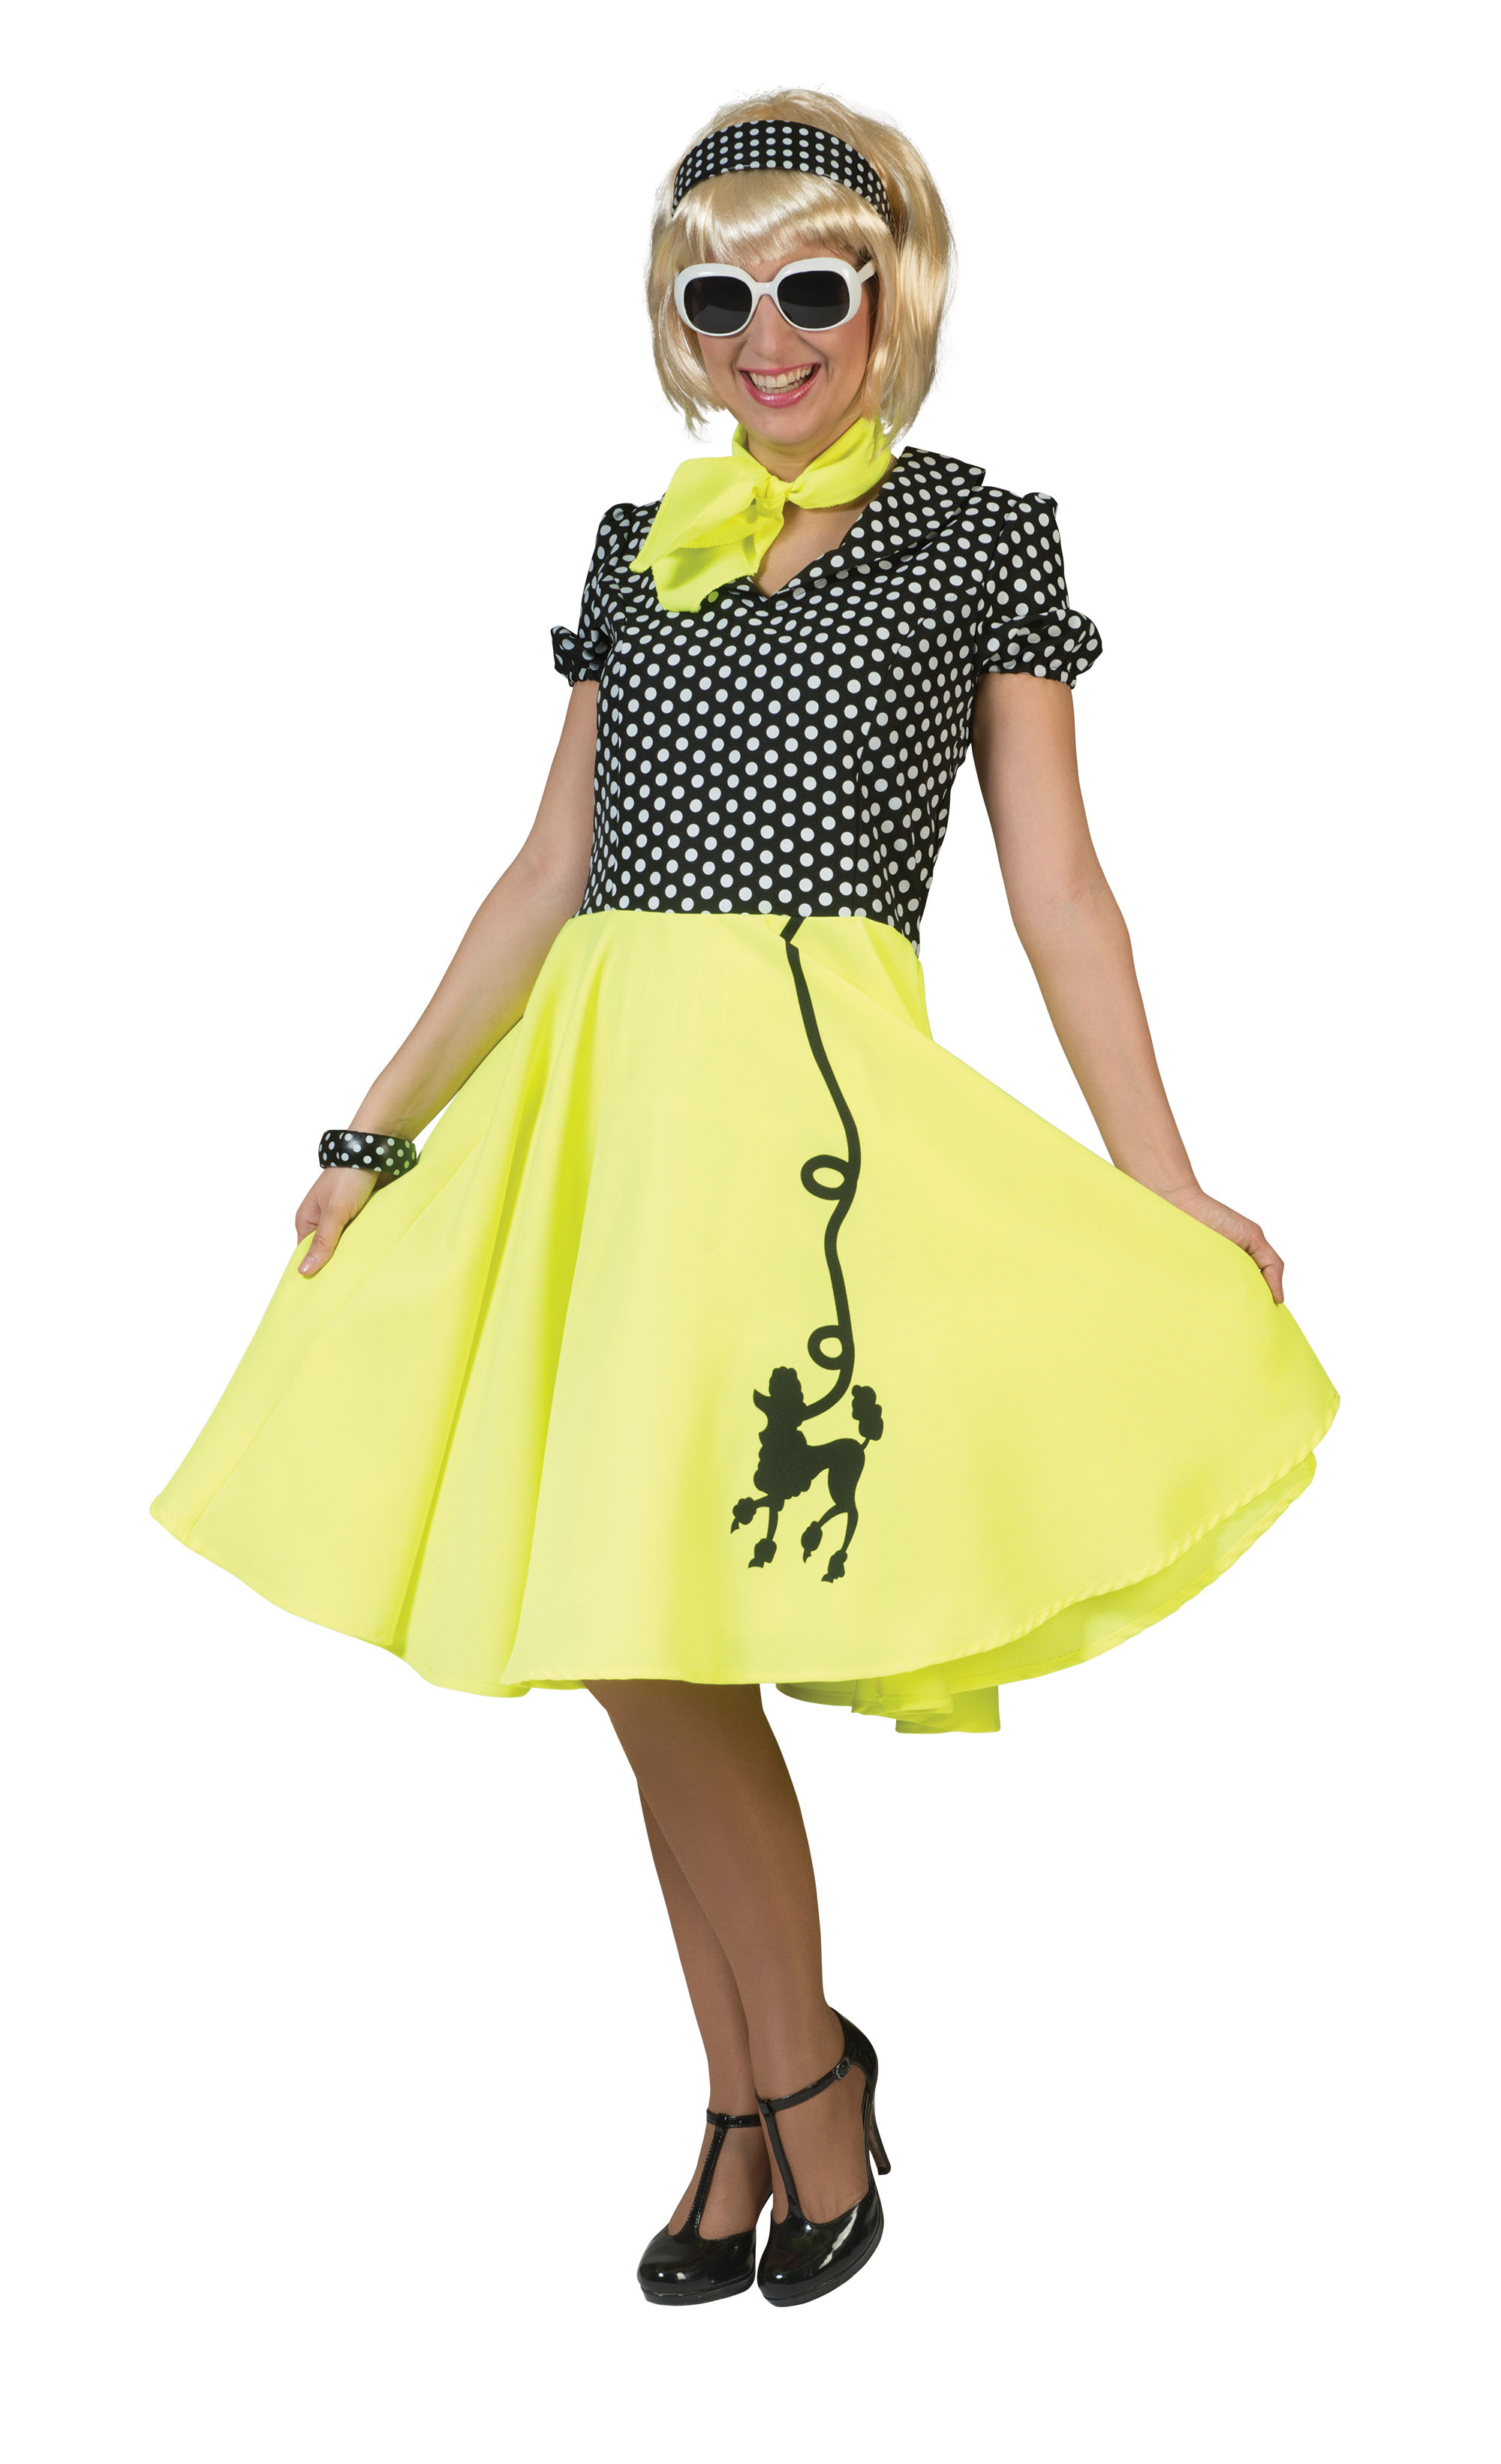 Ladies Poodle Dress Yellow/Black Costume 50s Rockabilly Fifties Fancy Dress